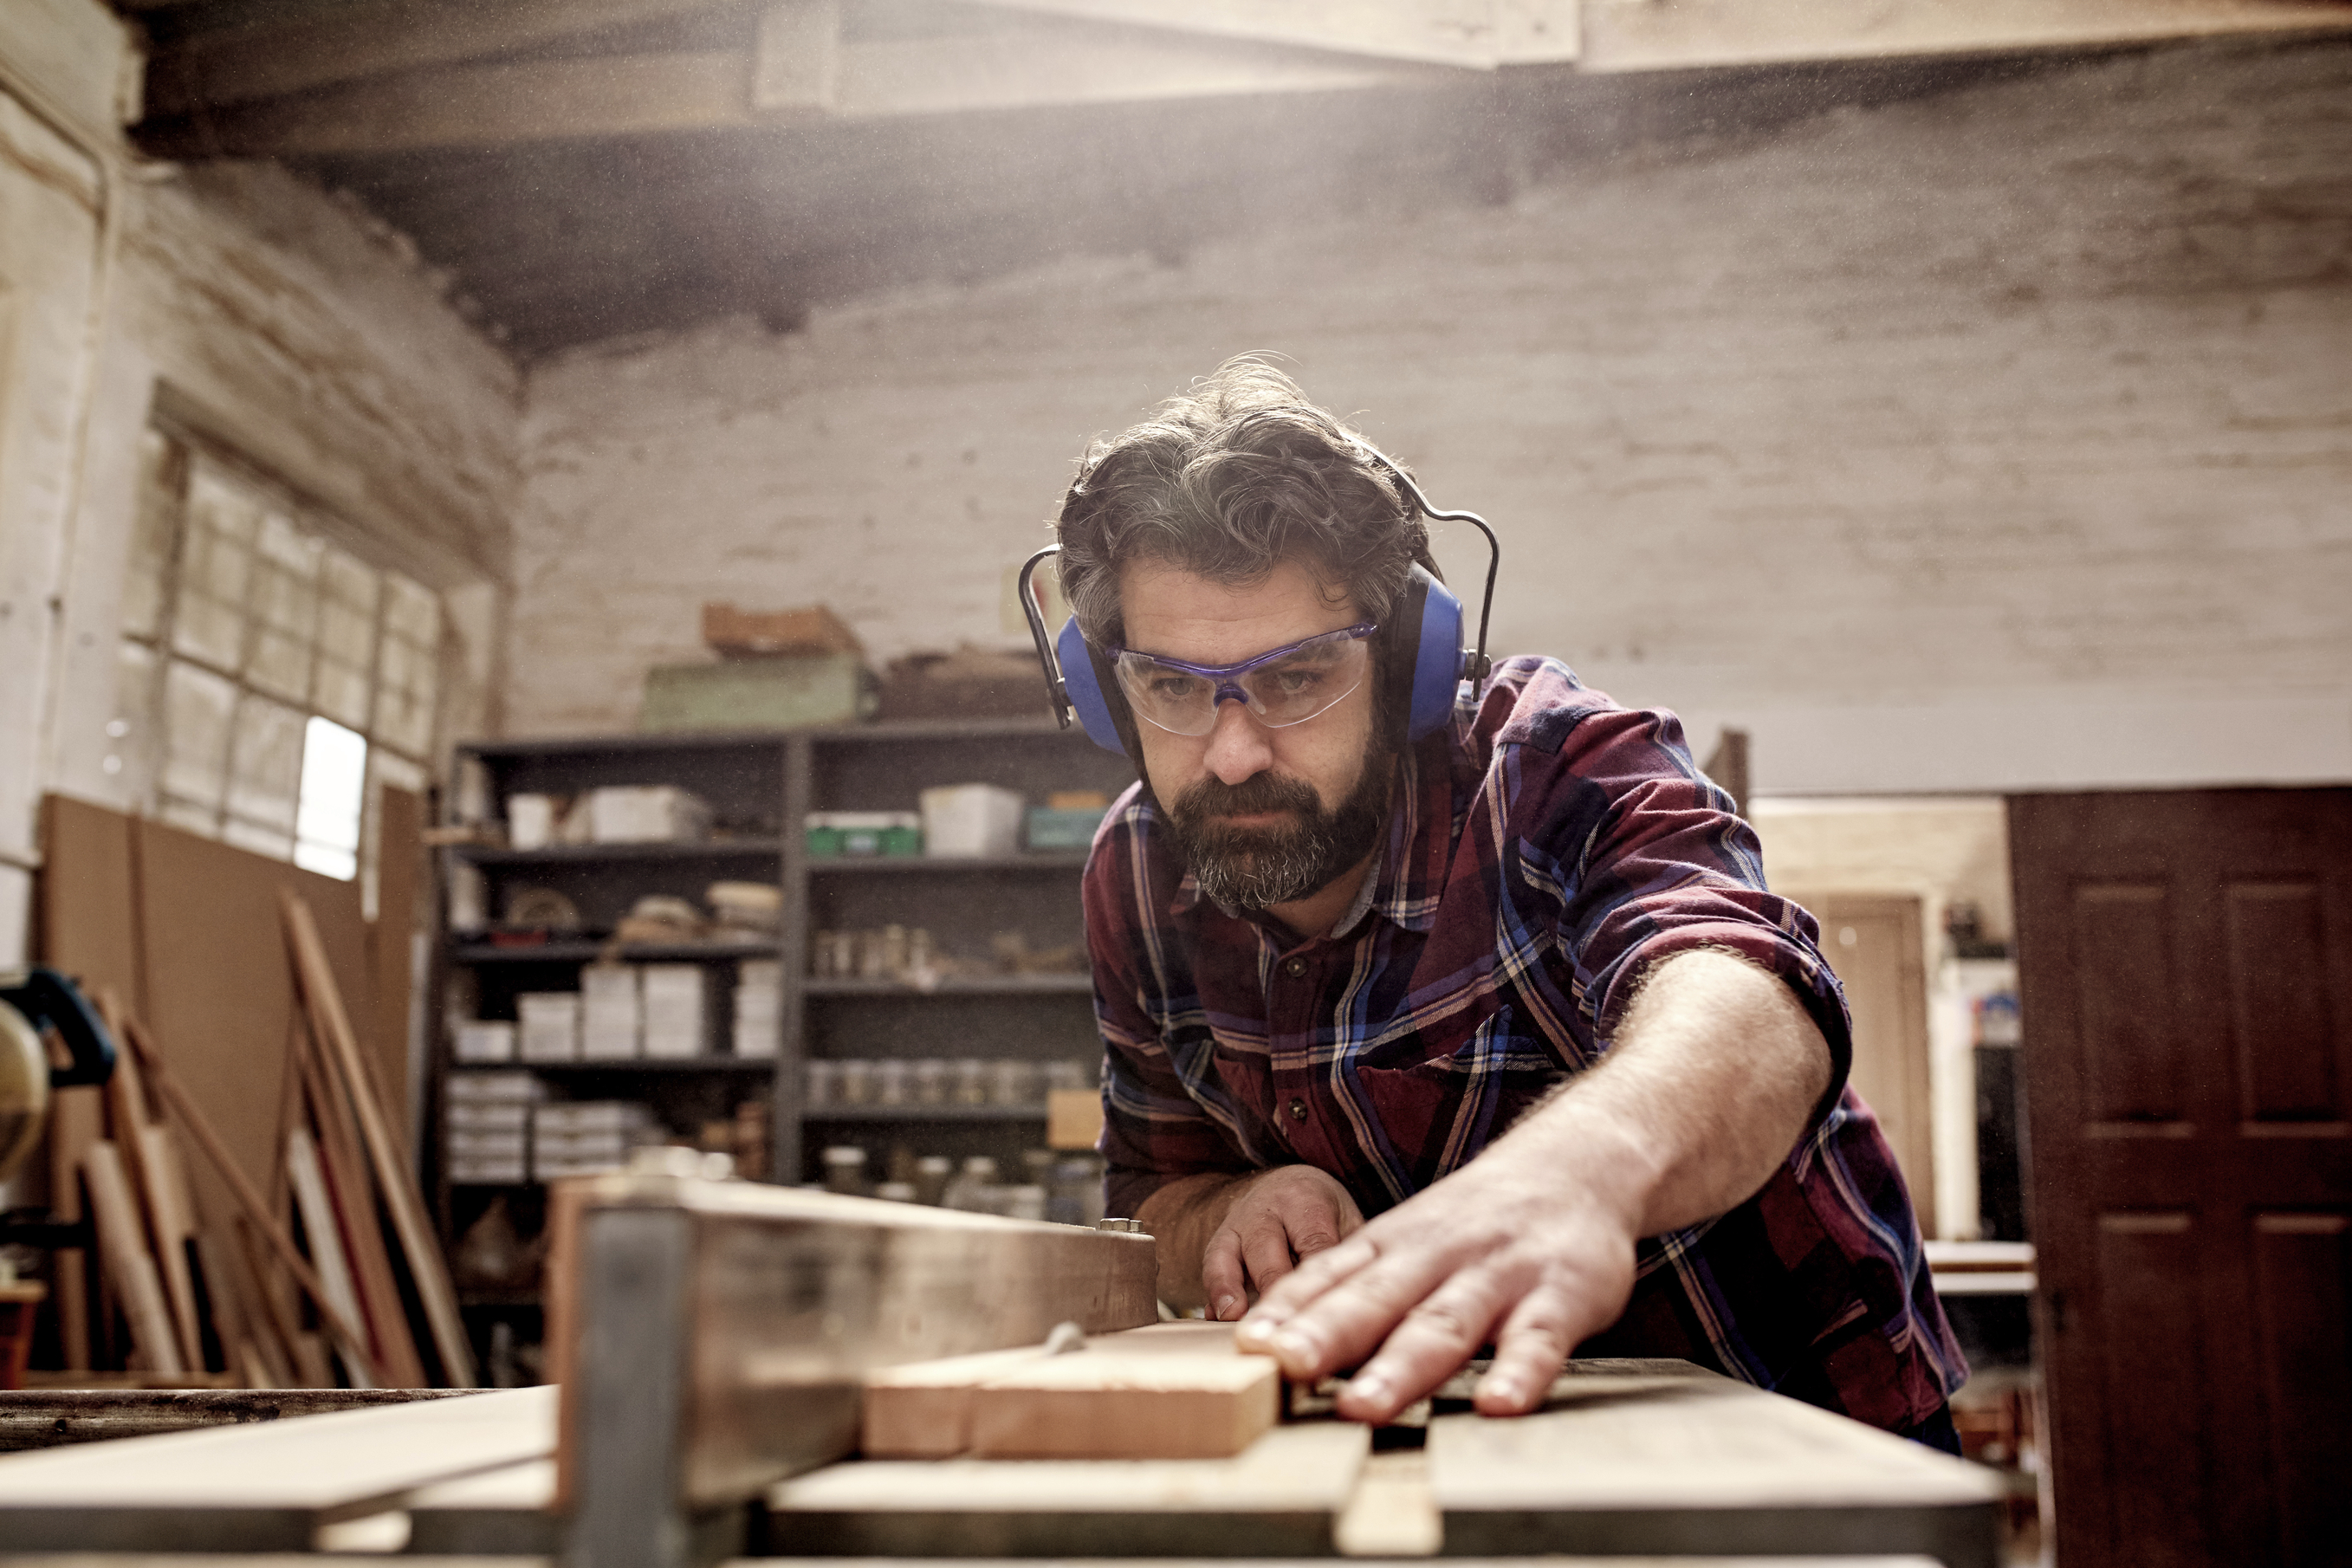 Carpentry business owner cutting a plank of wood in workshop